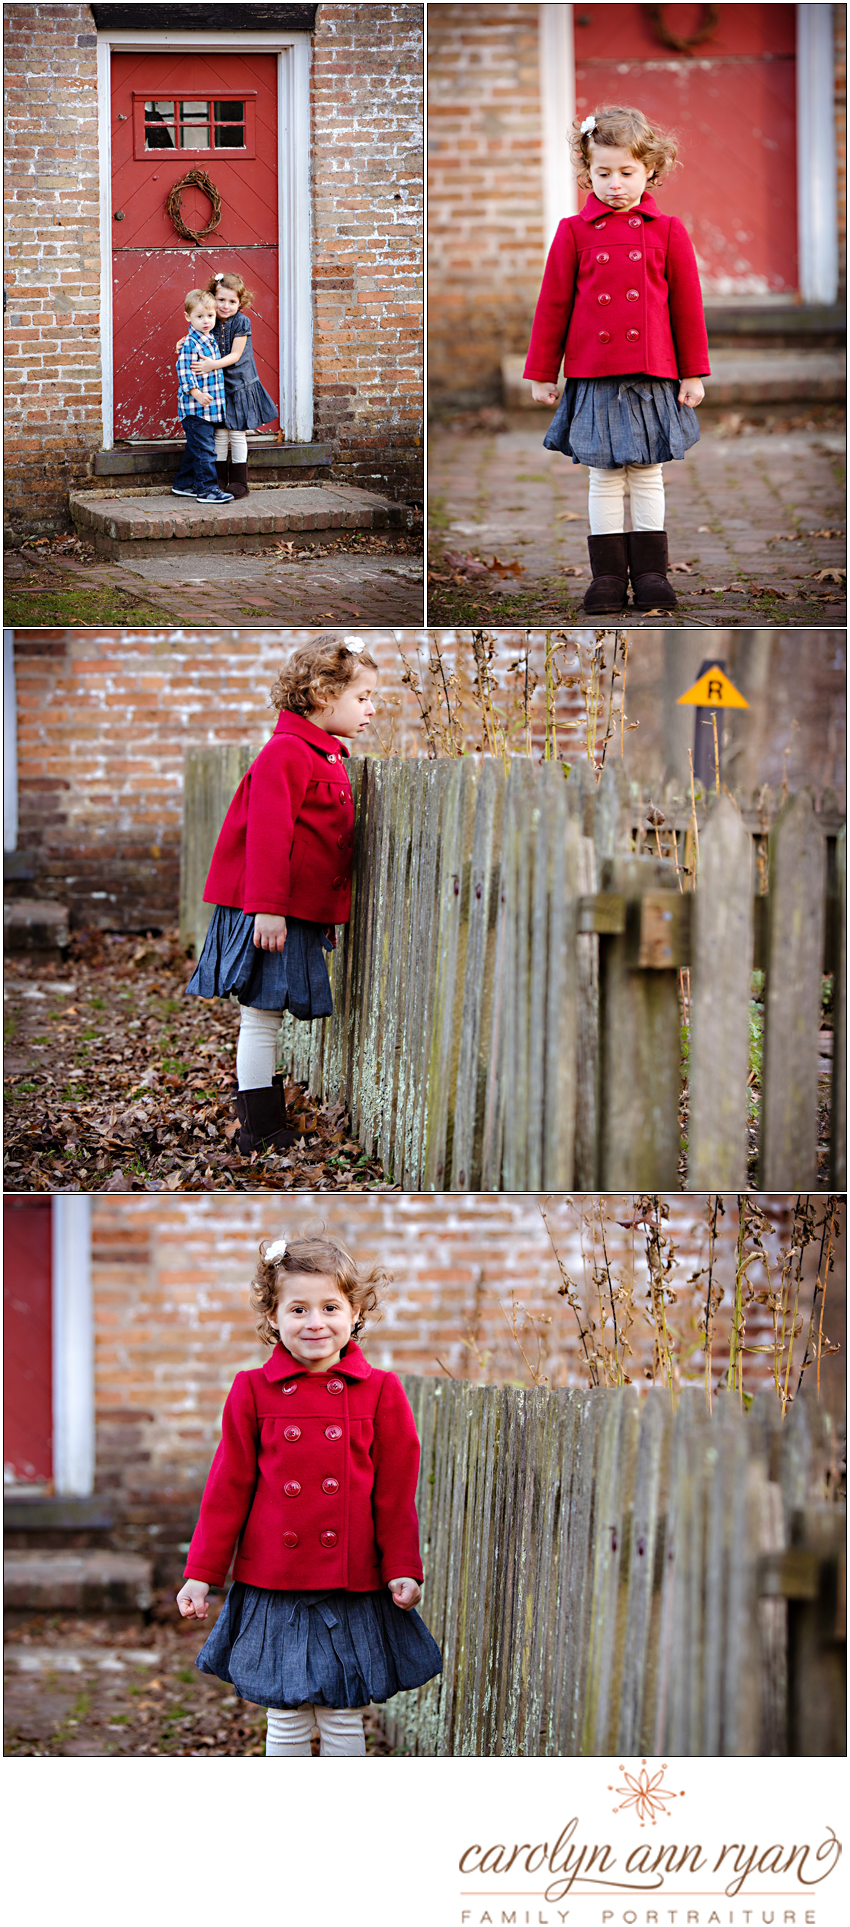 Warmhearted Charlotte, NC Family Photography by Carolyn Ann Ryan